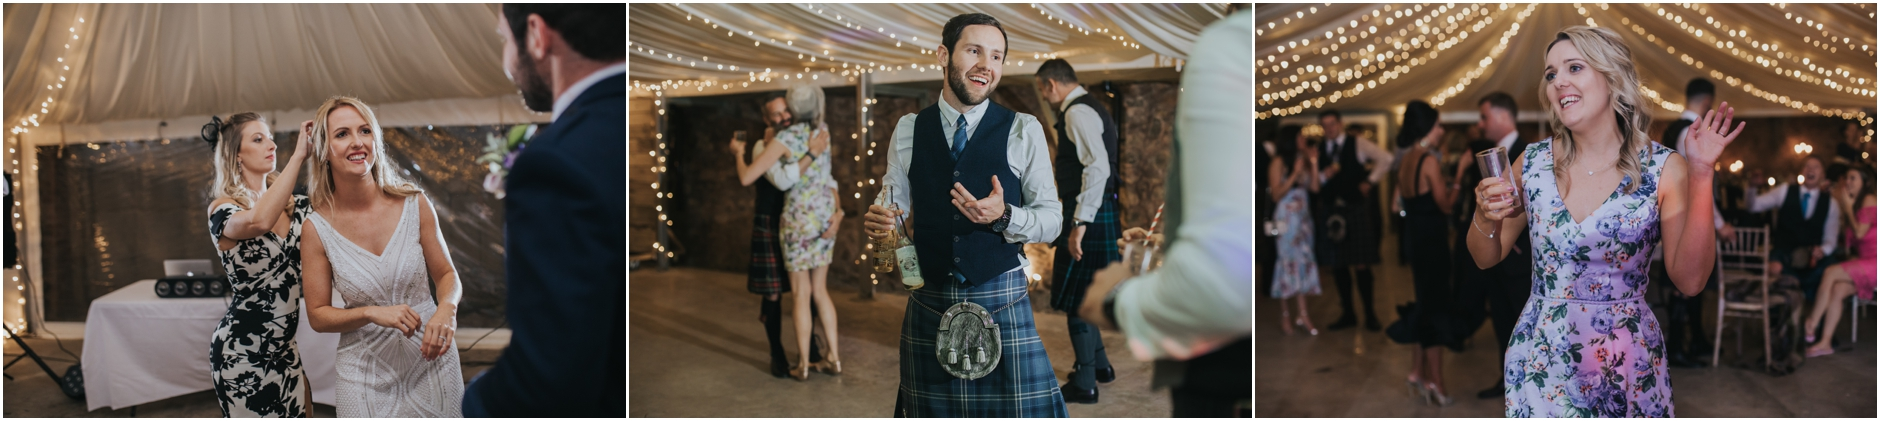 cow shed crail wedding photographer